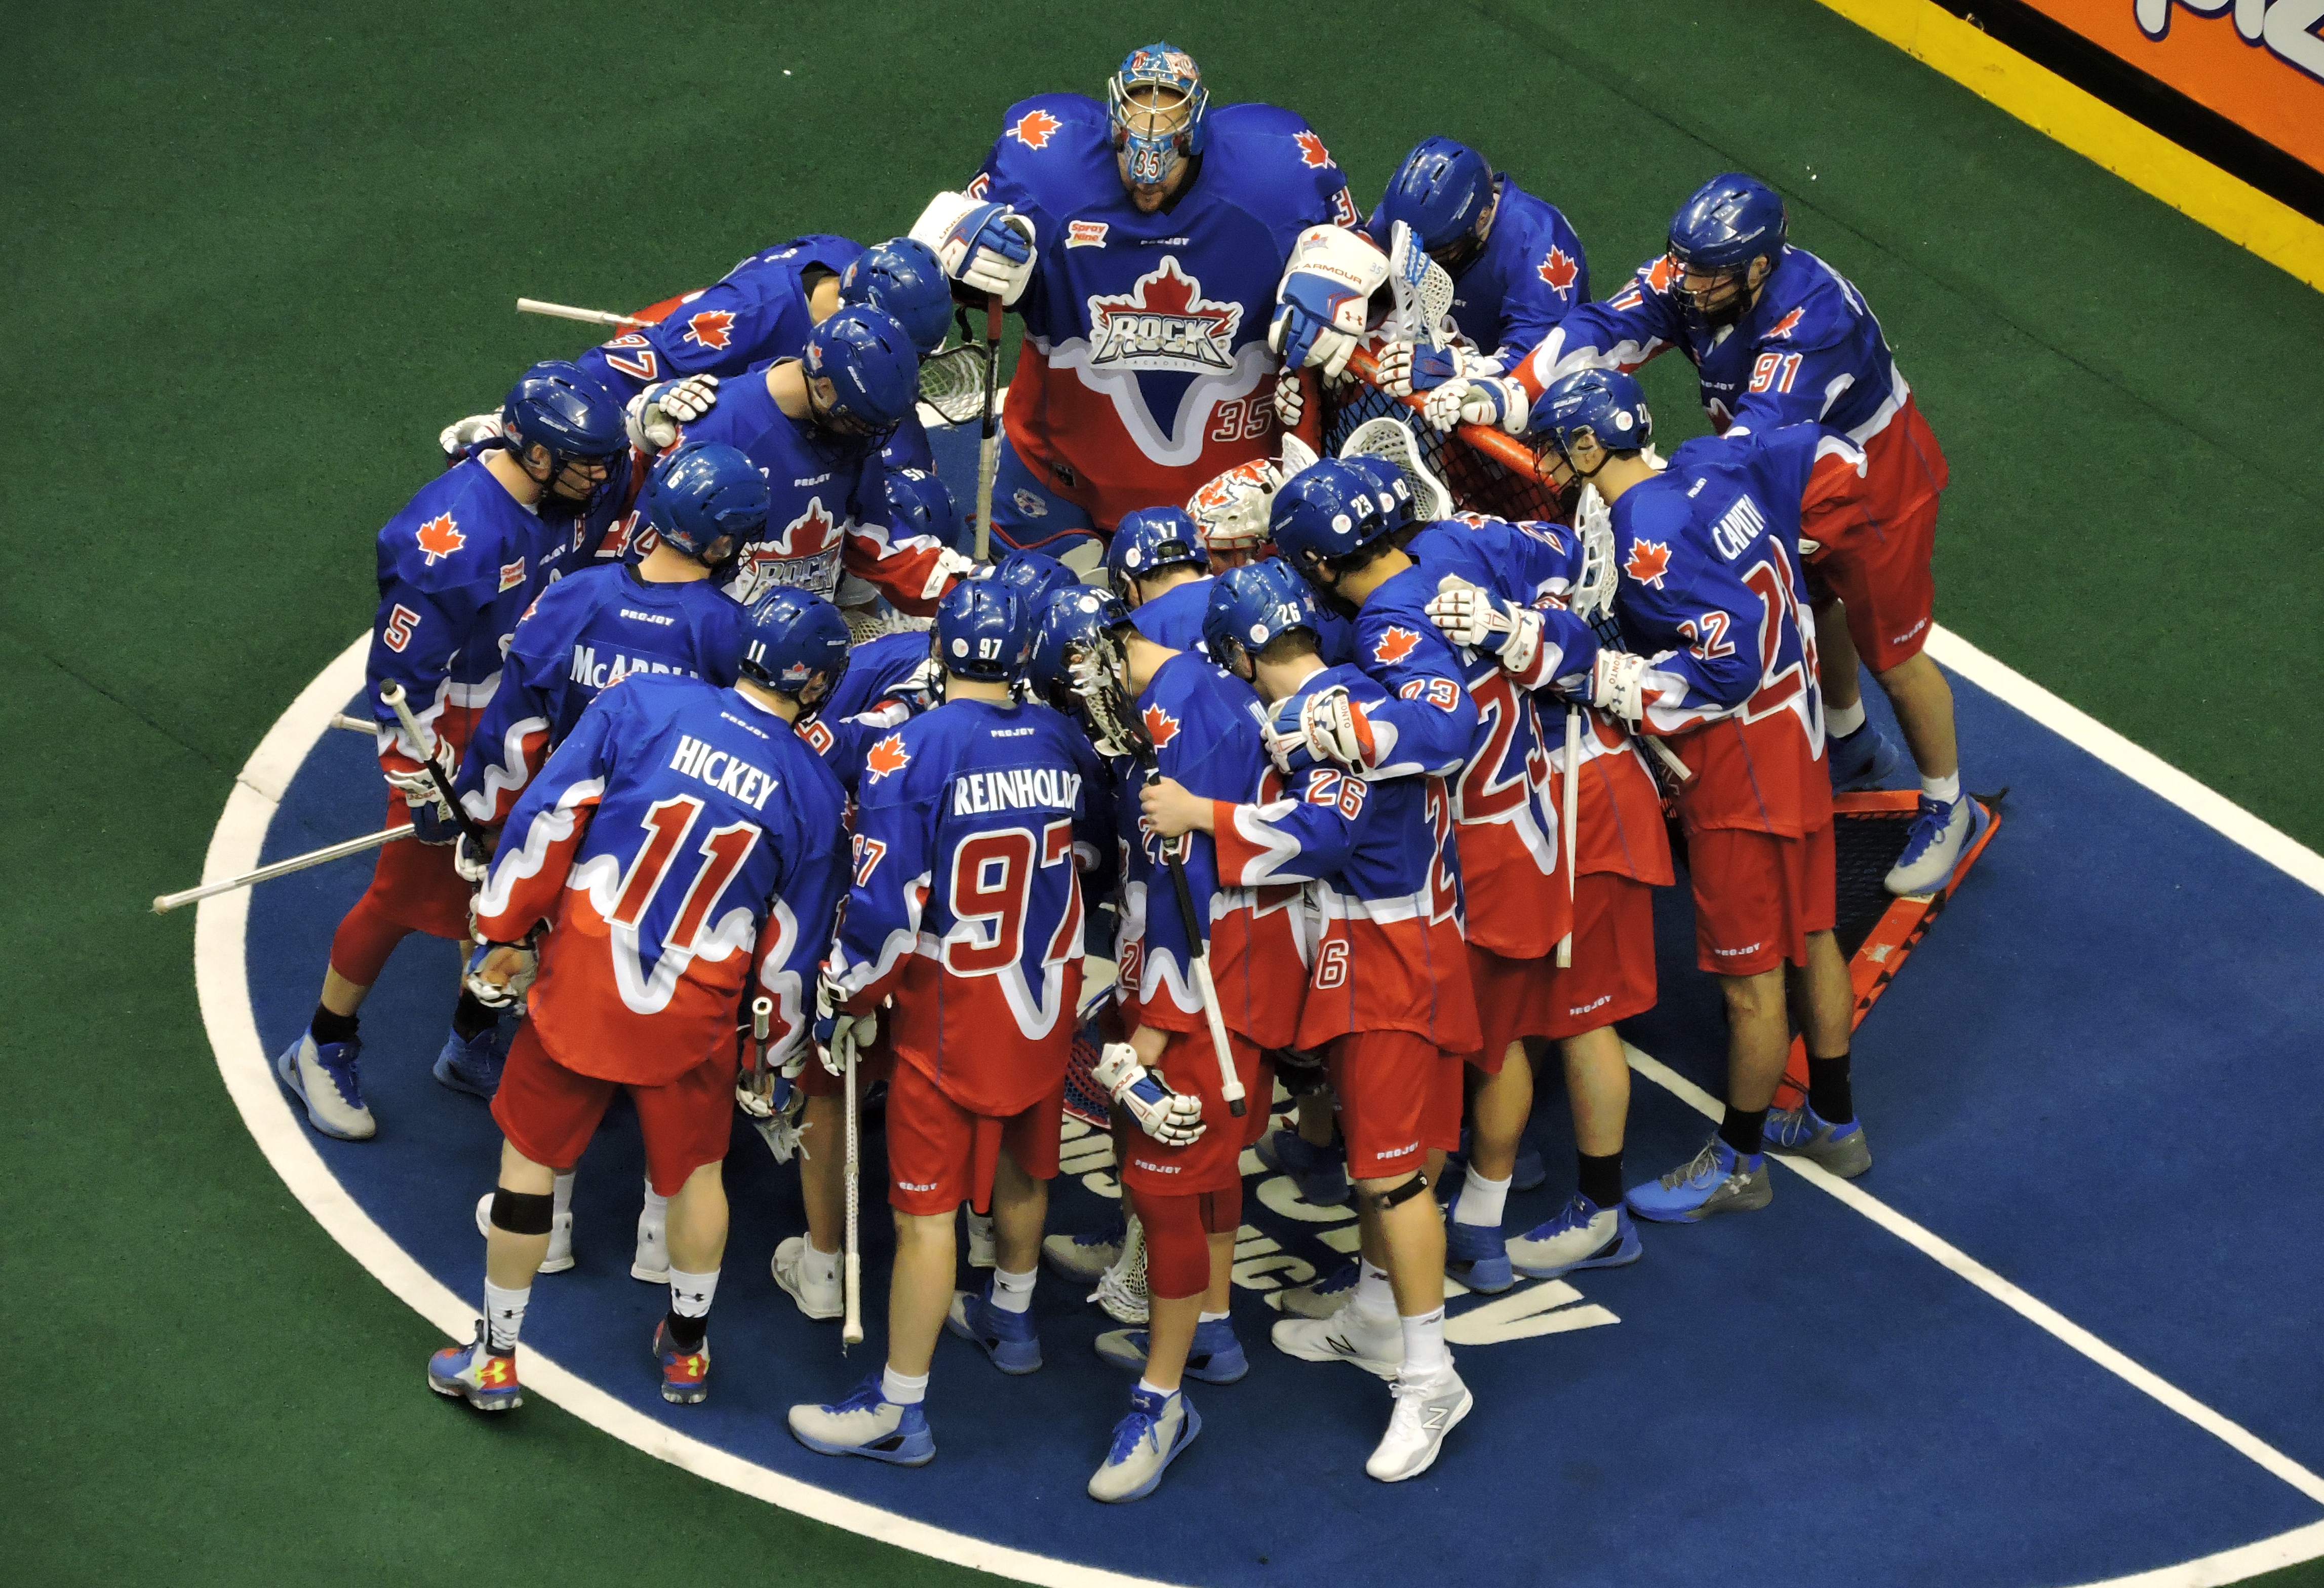 The Toronto Rock prepare to host the Calgary Roughnecks on March 11, 2017 at the Air Canada Centre. (Photo credit: Anna Taylor)